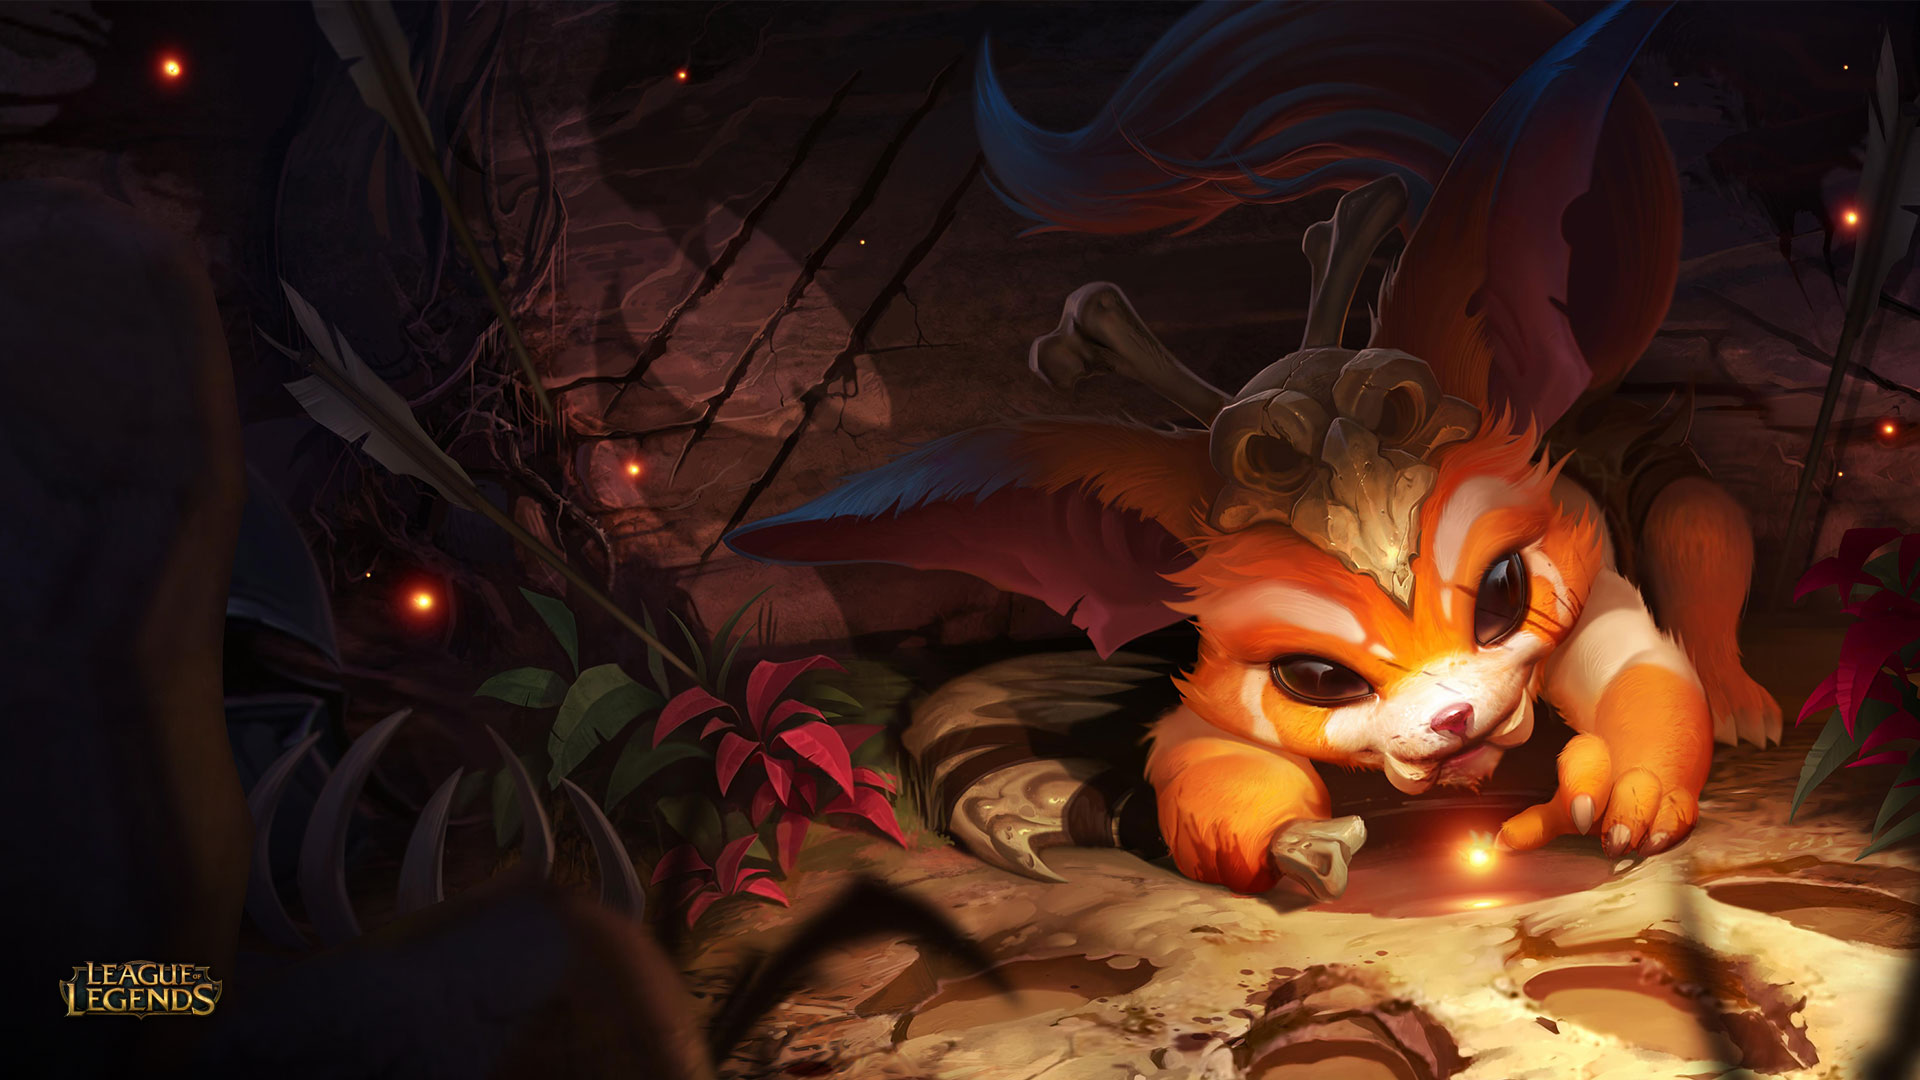 Gnar From League Of Legends Wallpaper Full Hd Id4049